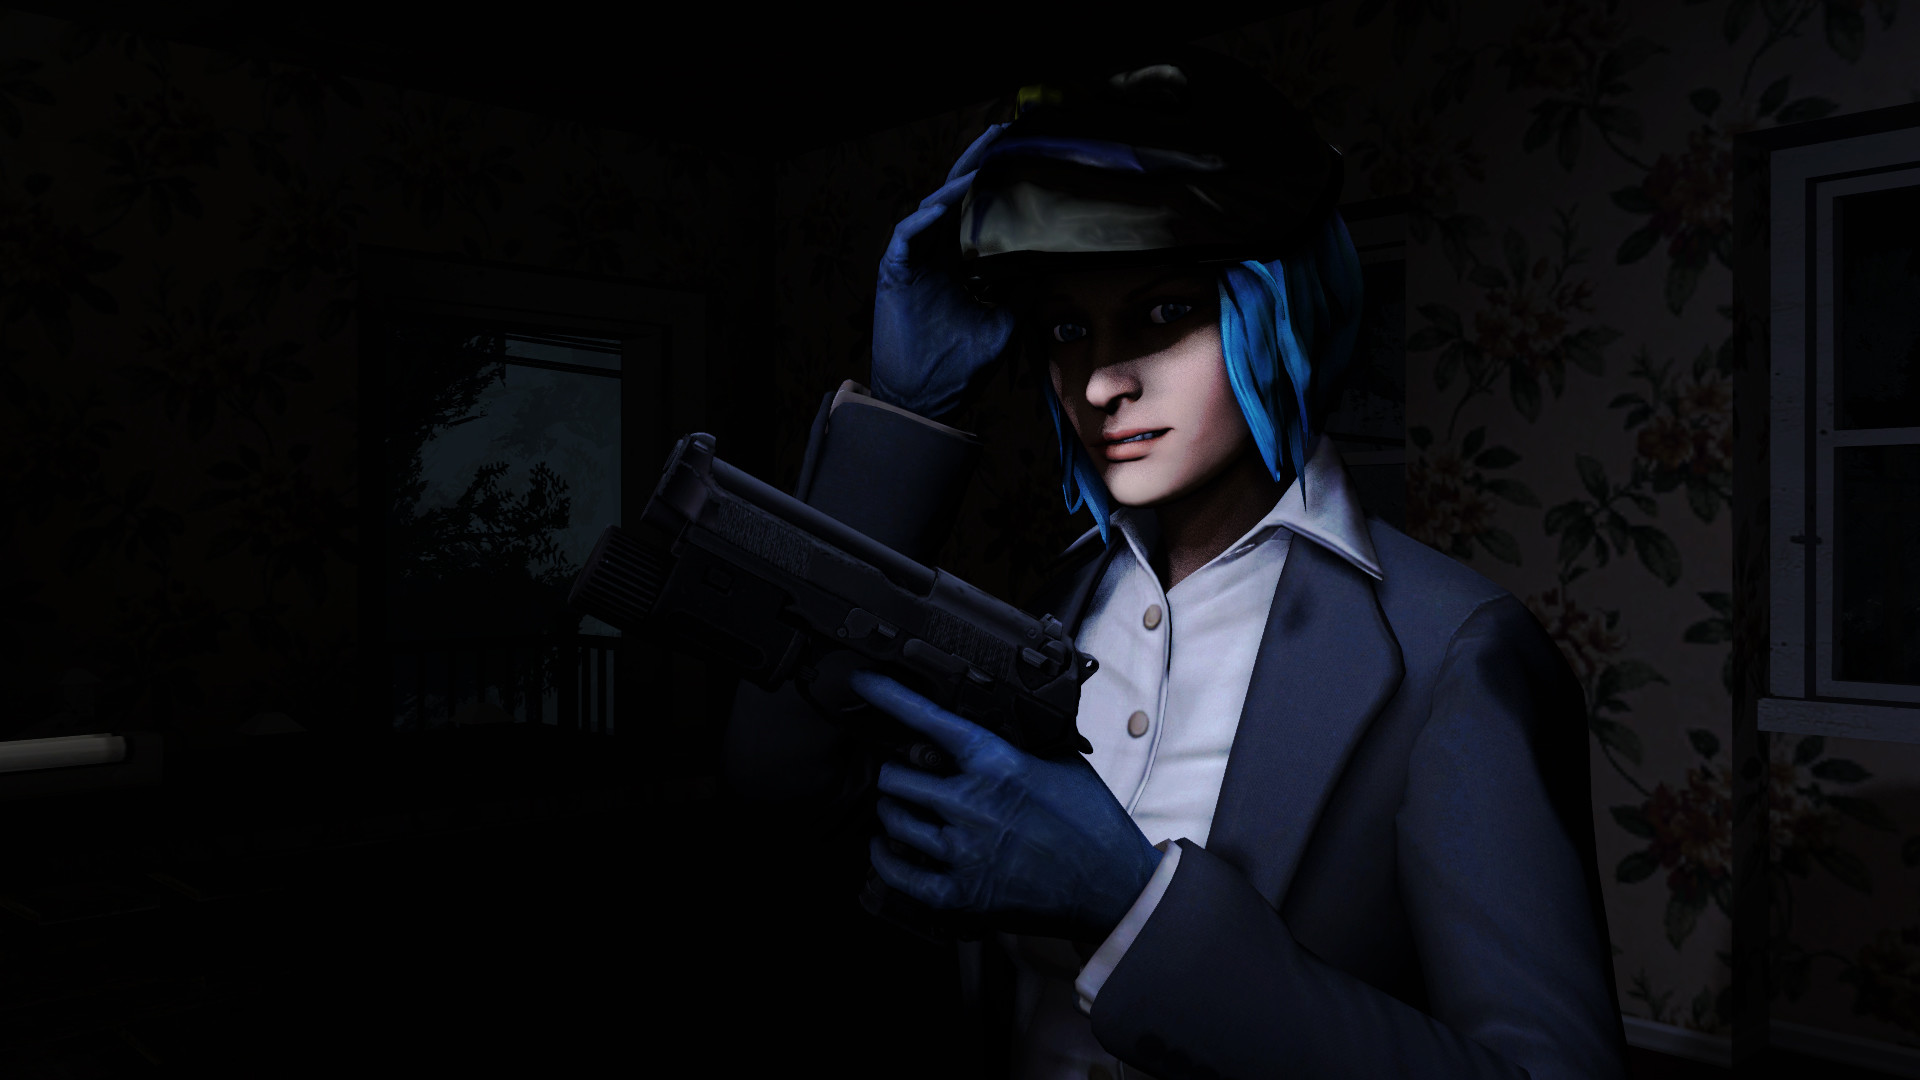 Res: 1920x1080, ... Life is Payday: Chloe Price by Cor-Angars